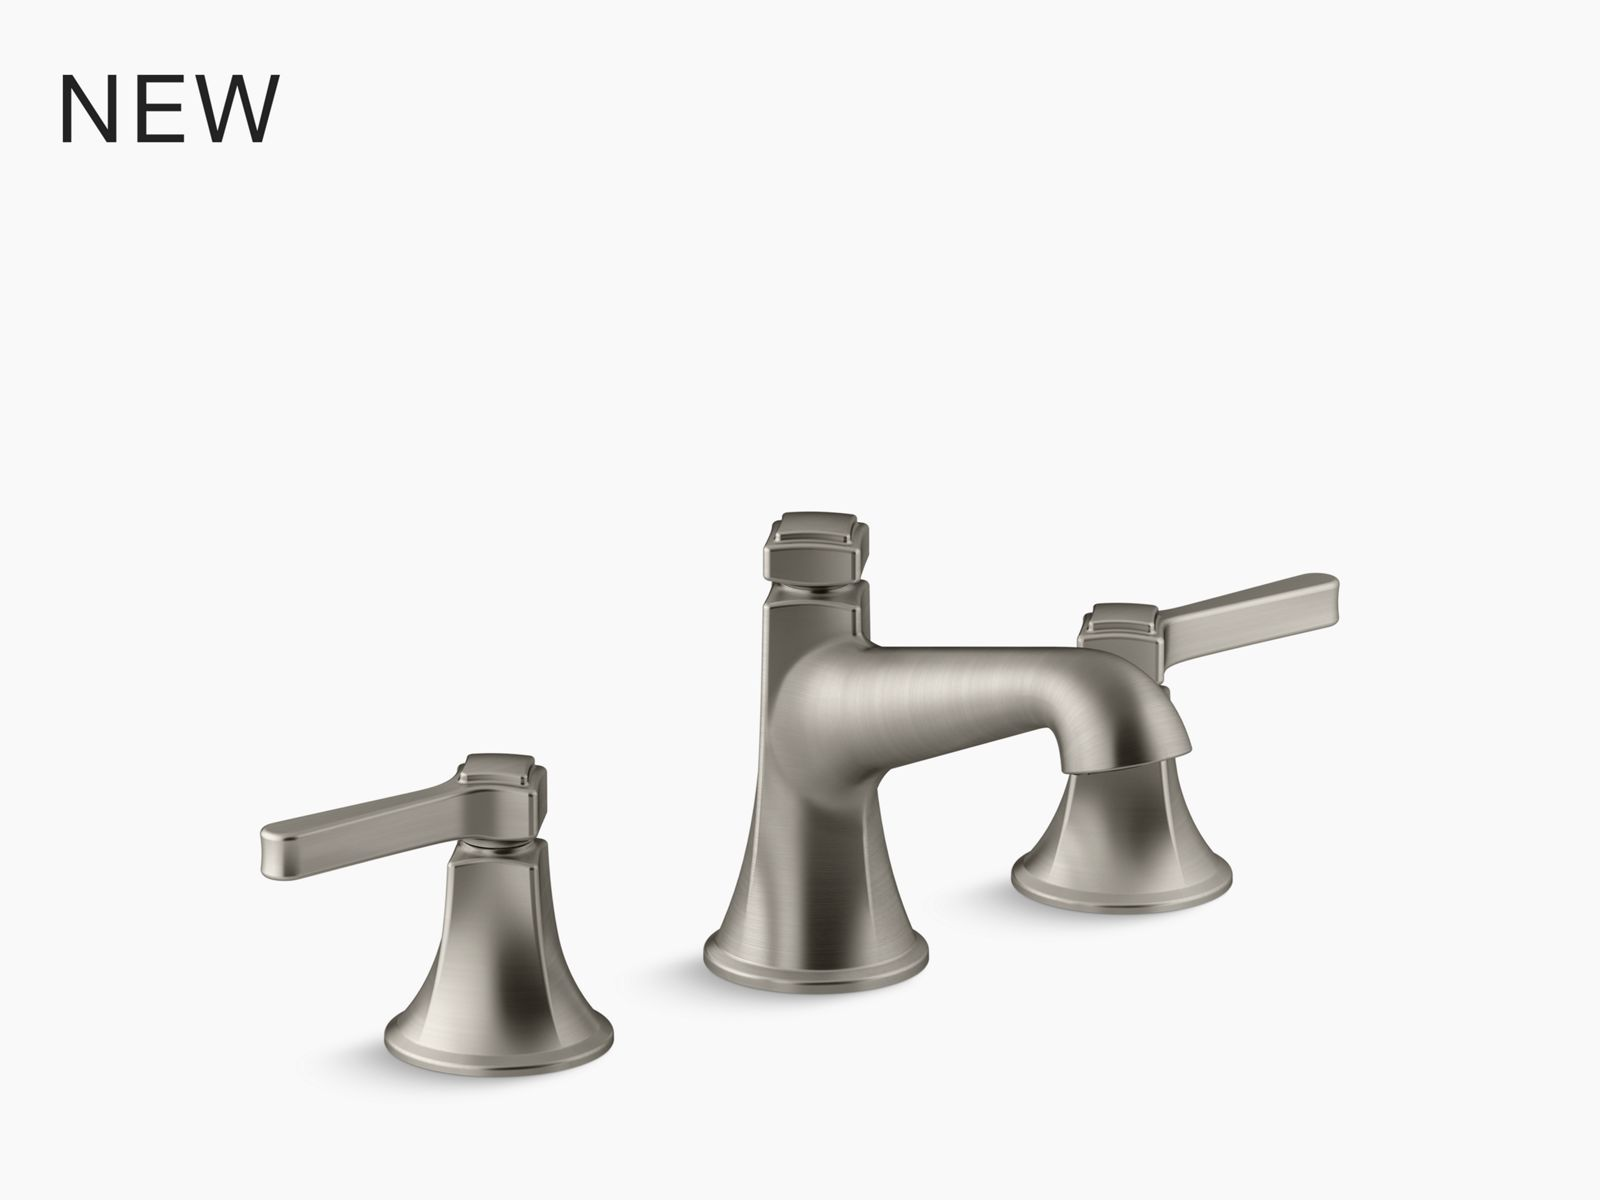 triton bowe 1 0 gpm centerset bathroom sink faucet with aerated flow gooseneck spout and wristblade handles drain not included